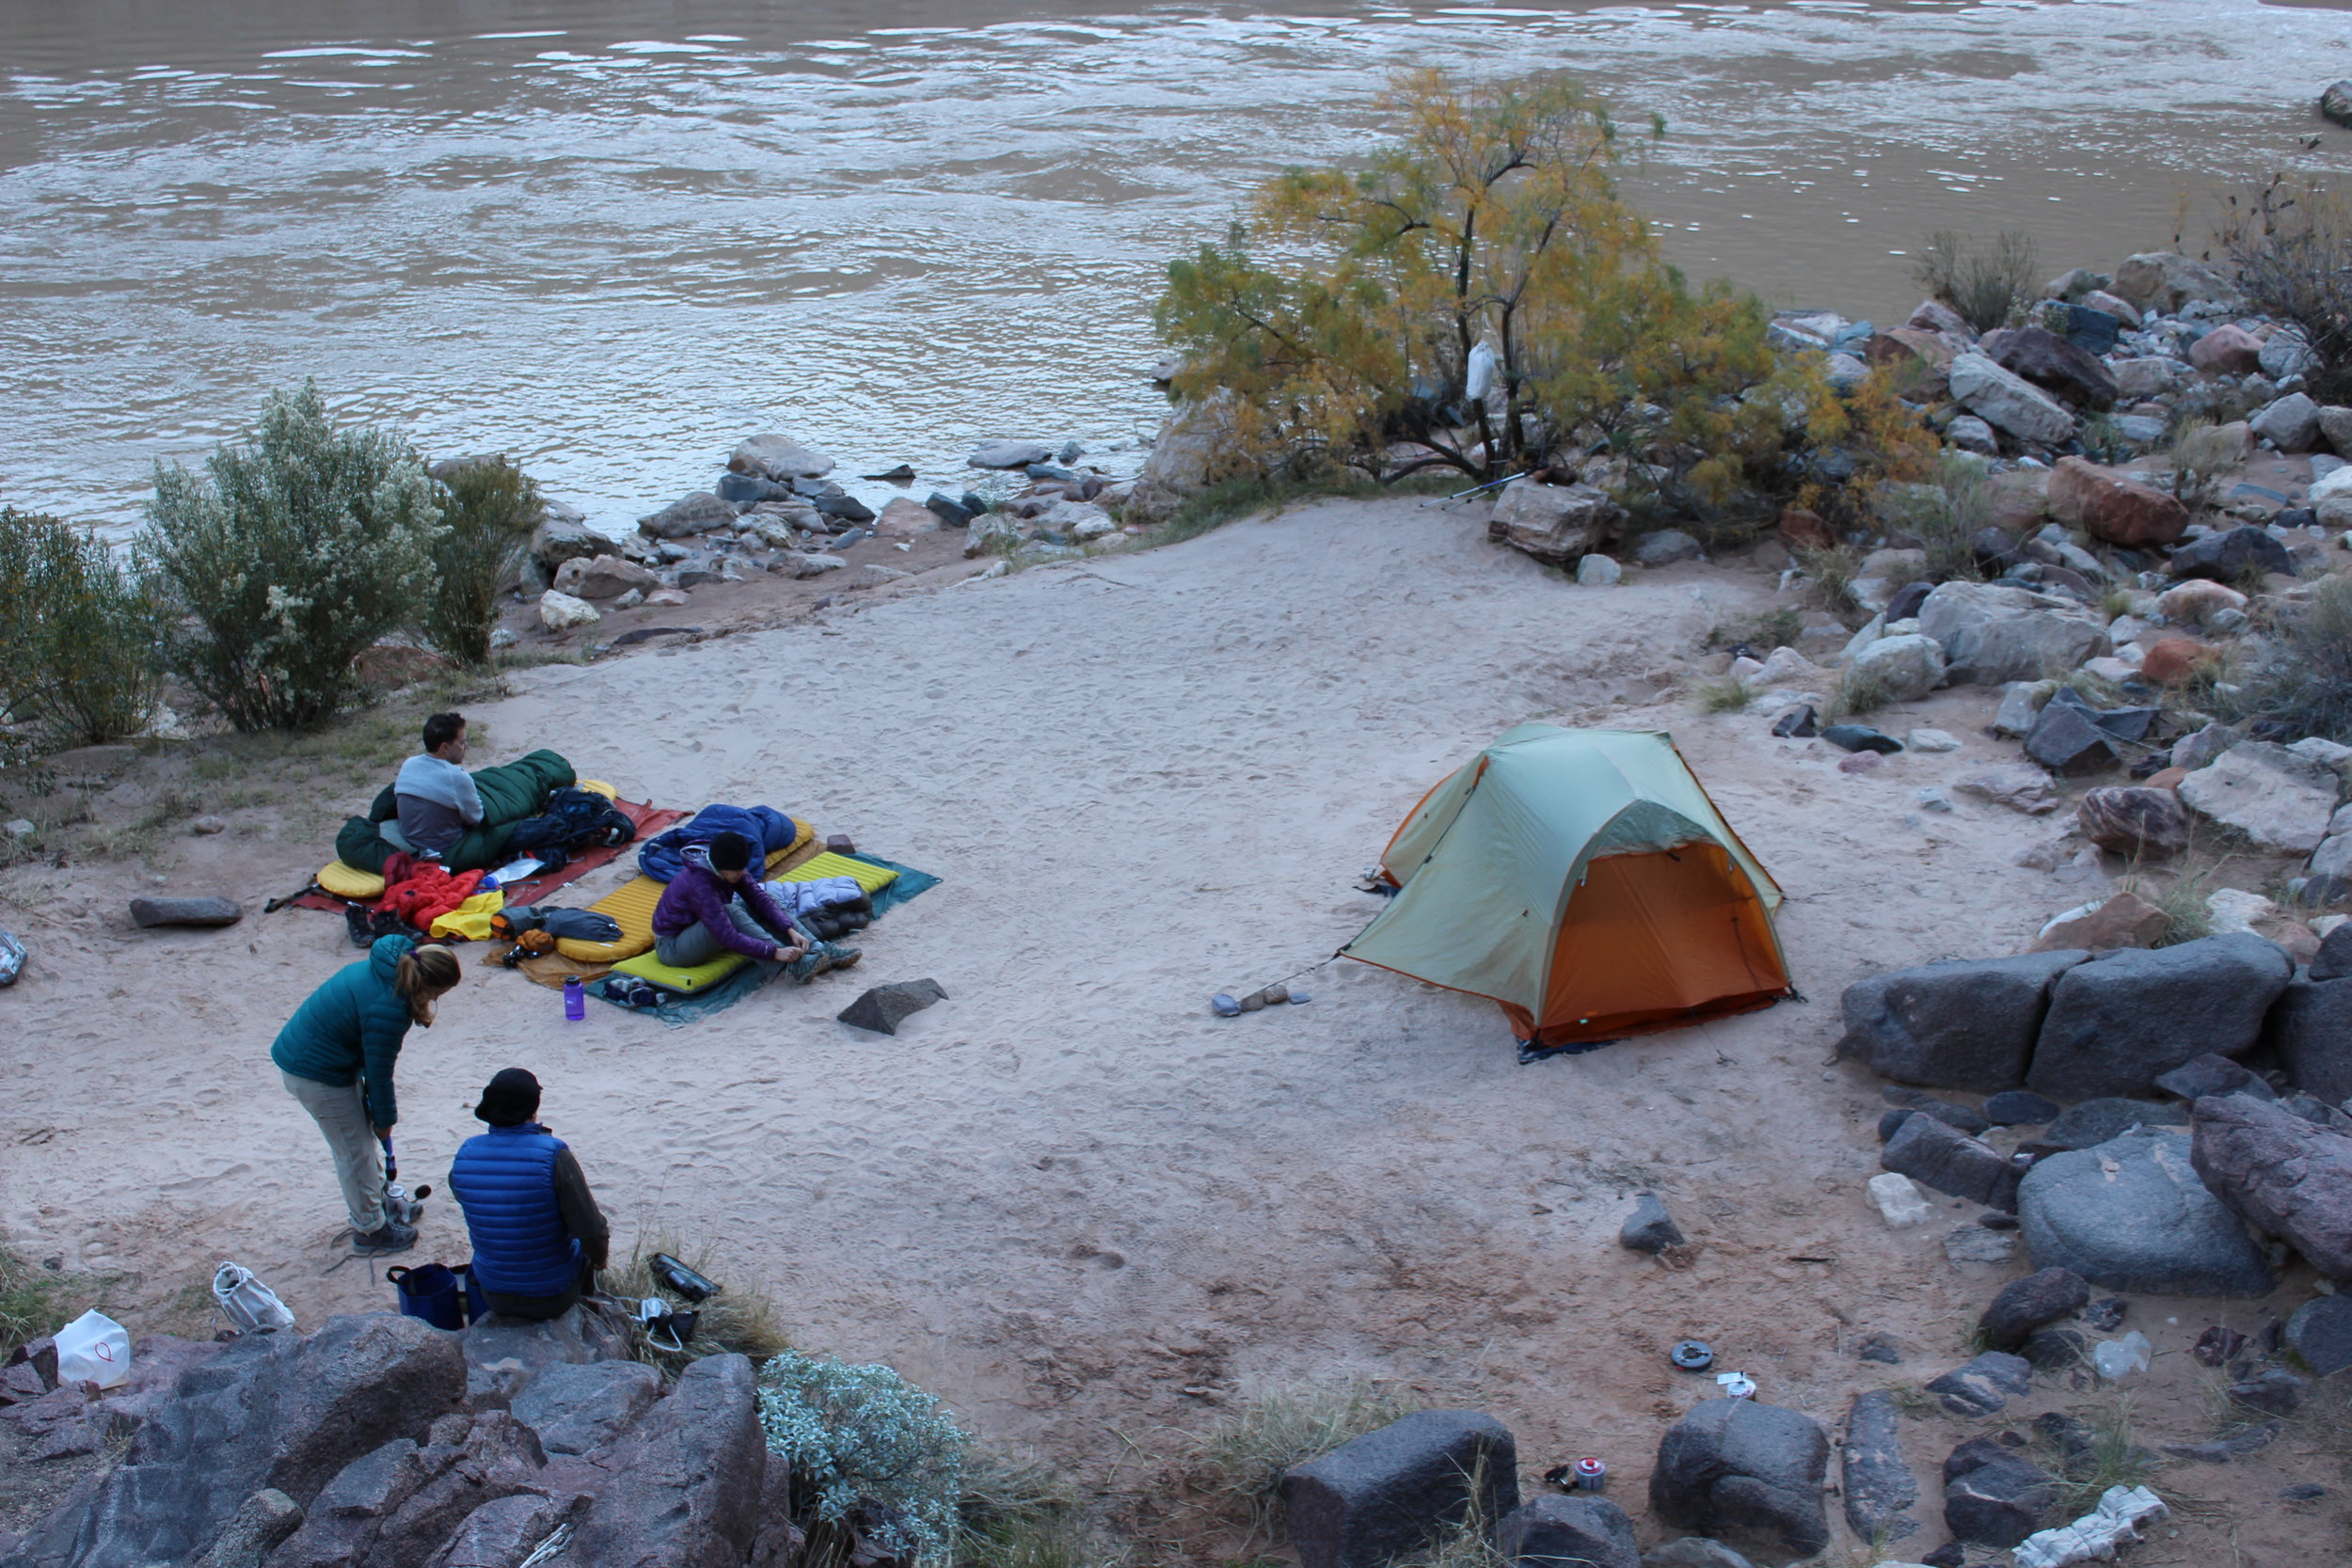 Our little camp by the river.